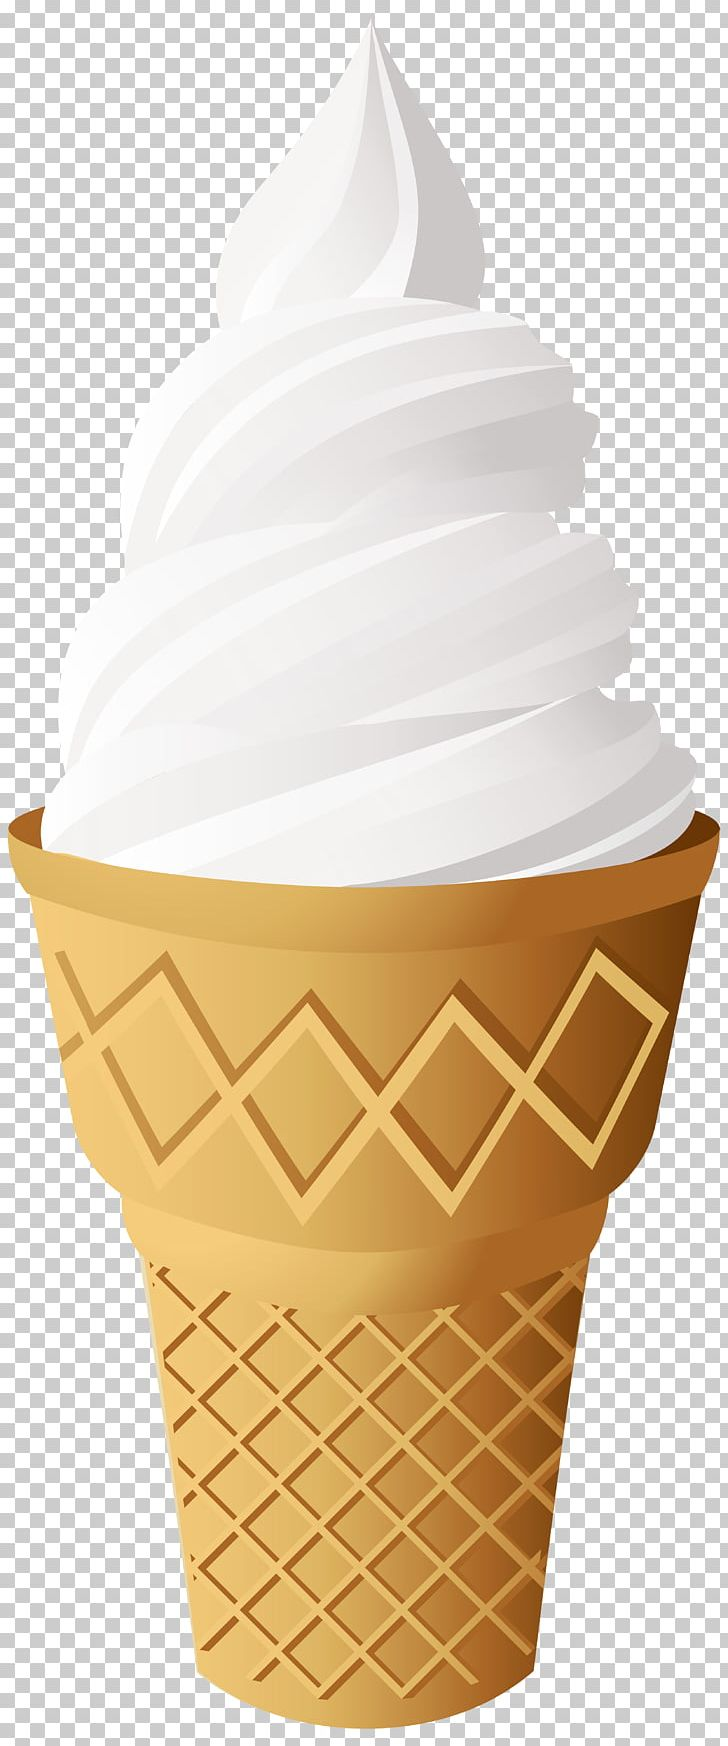 Ice Cream Cones Sundae Neapolitan Ice Cream PNG, Clipart, Baking Cup, Cream, Cup, Dairy Product, Dessert Free PNG Download